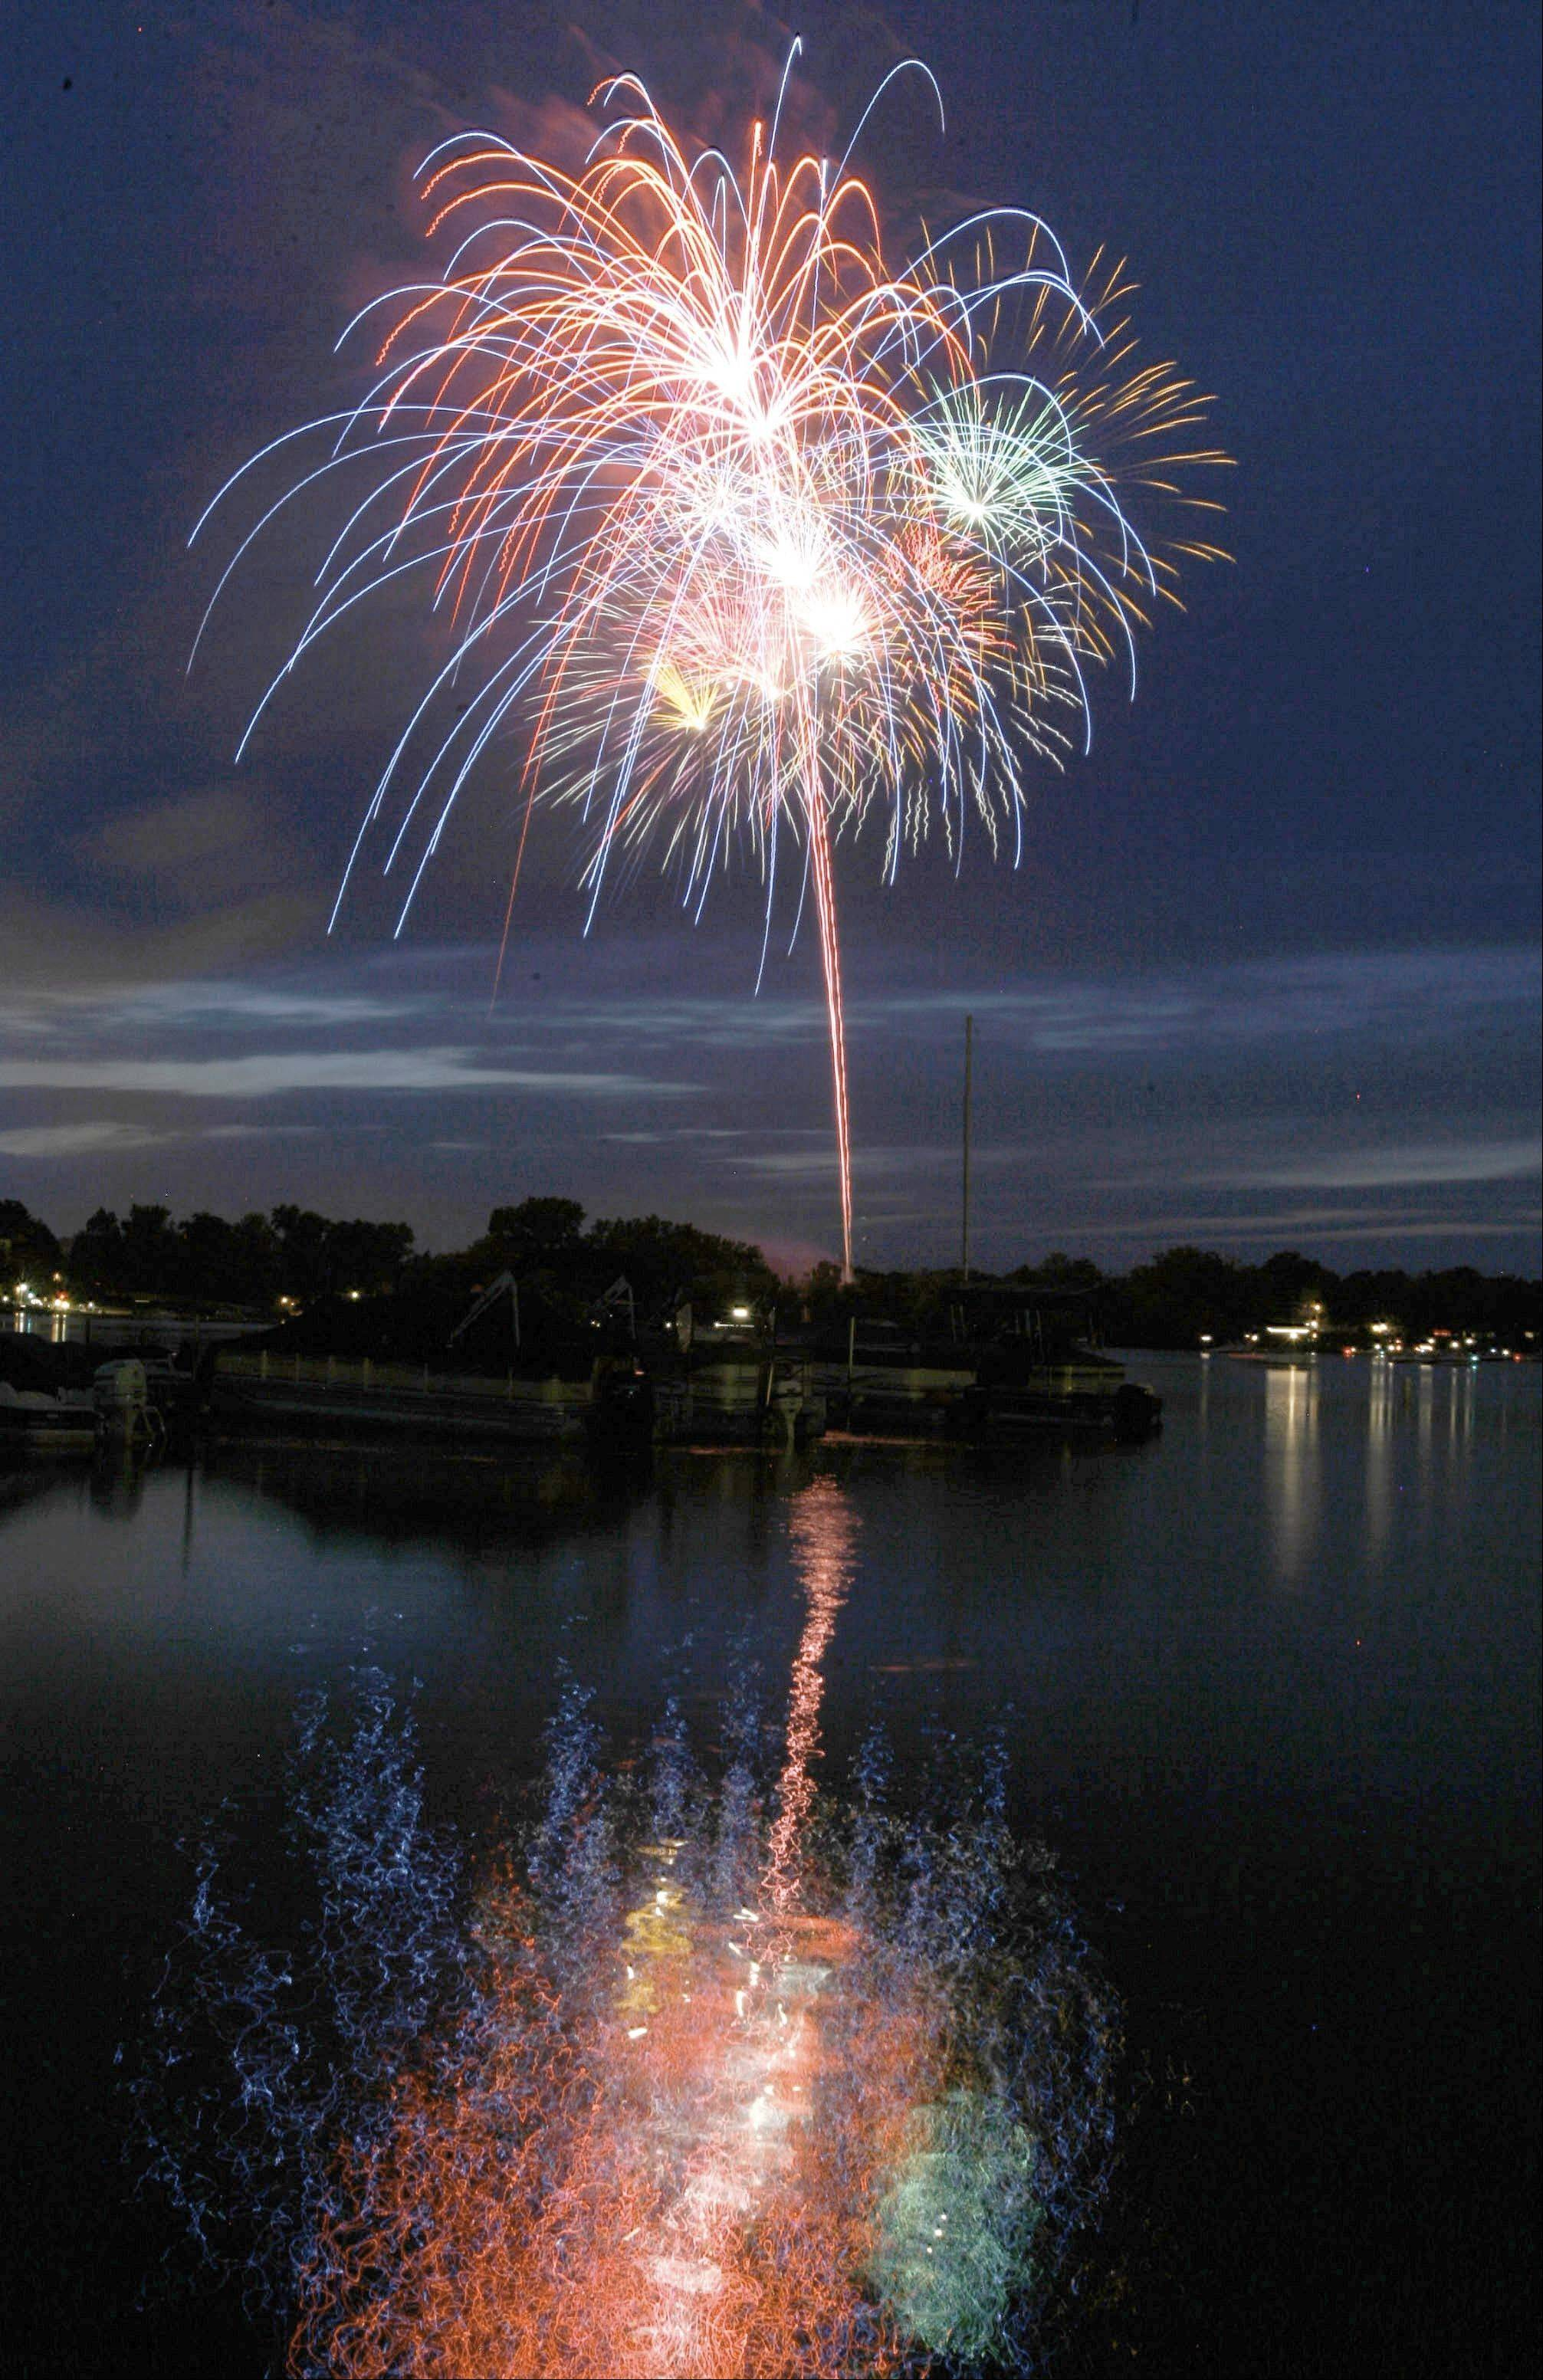 The village of Wauconda held their annual fireworks display at Cook Park and could be seen by hundreds of boaters on Bangs Lake.